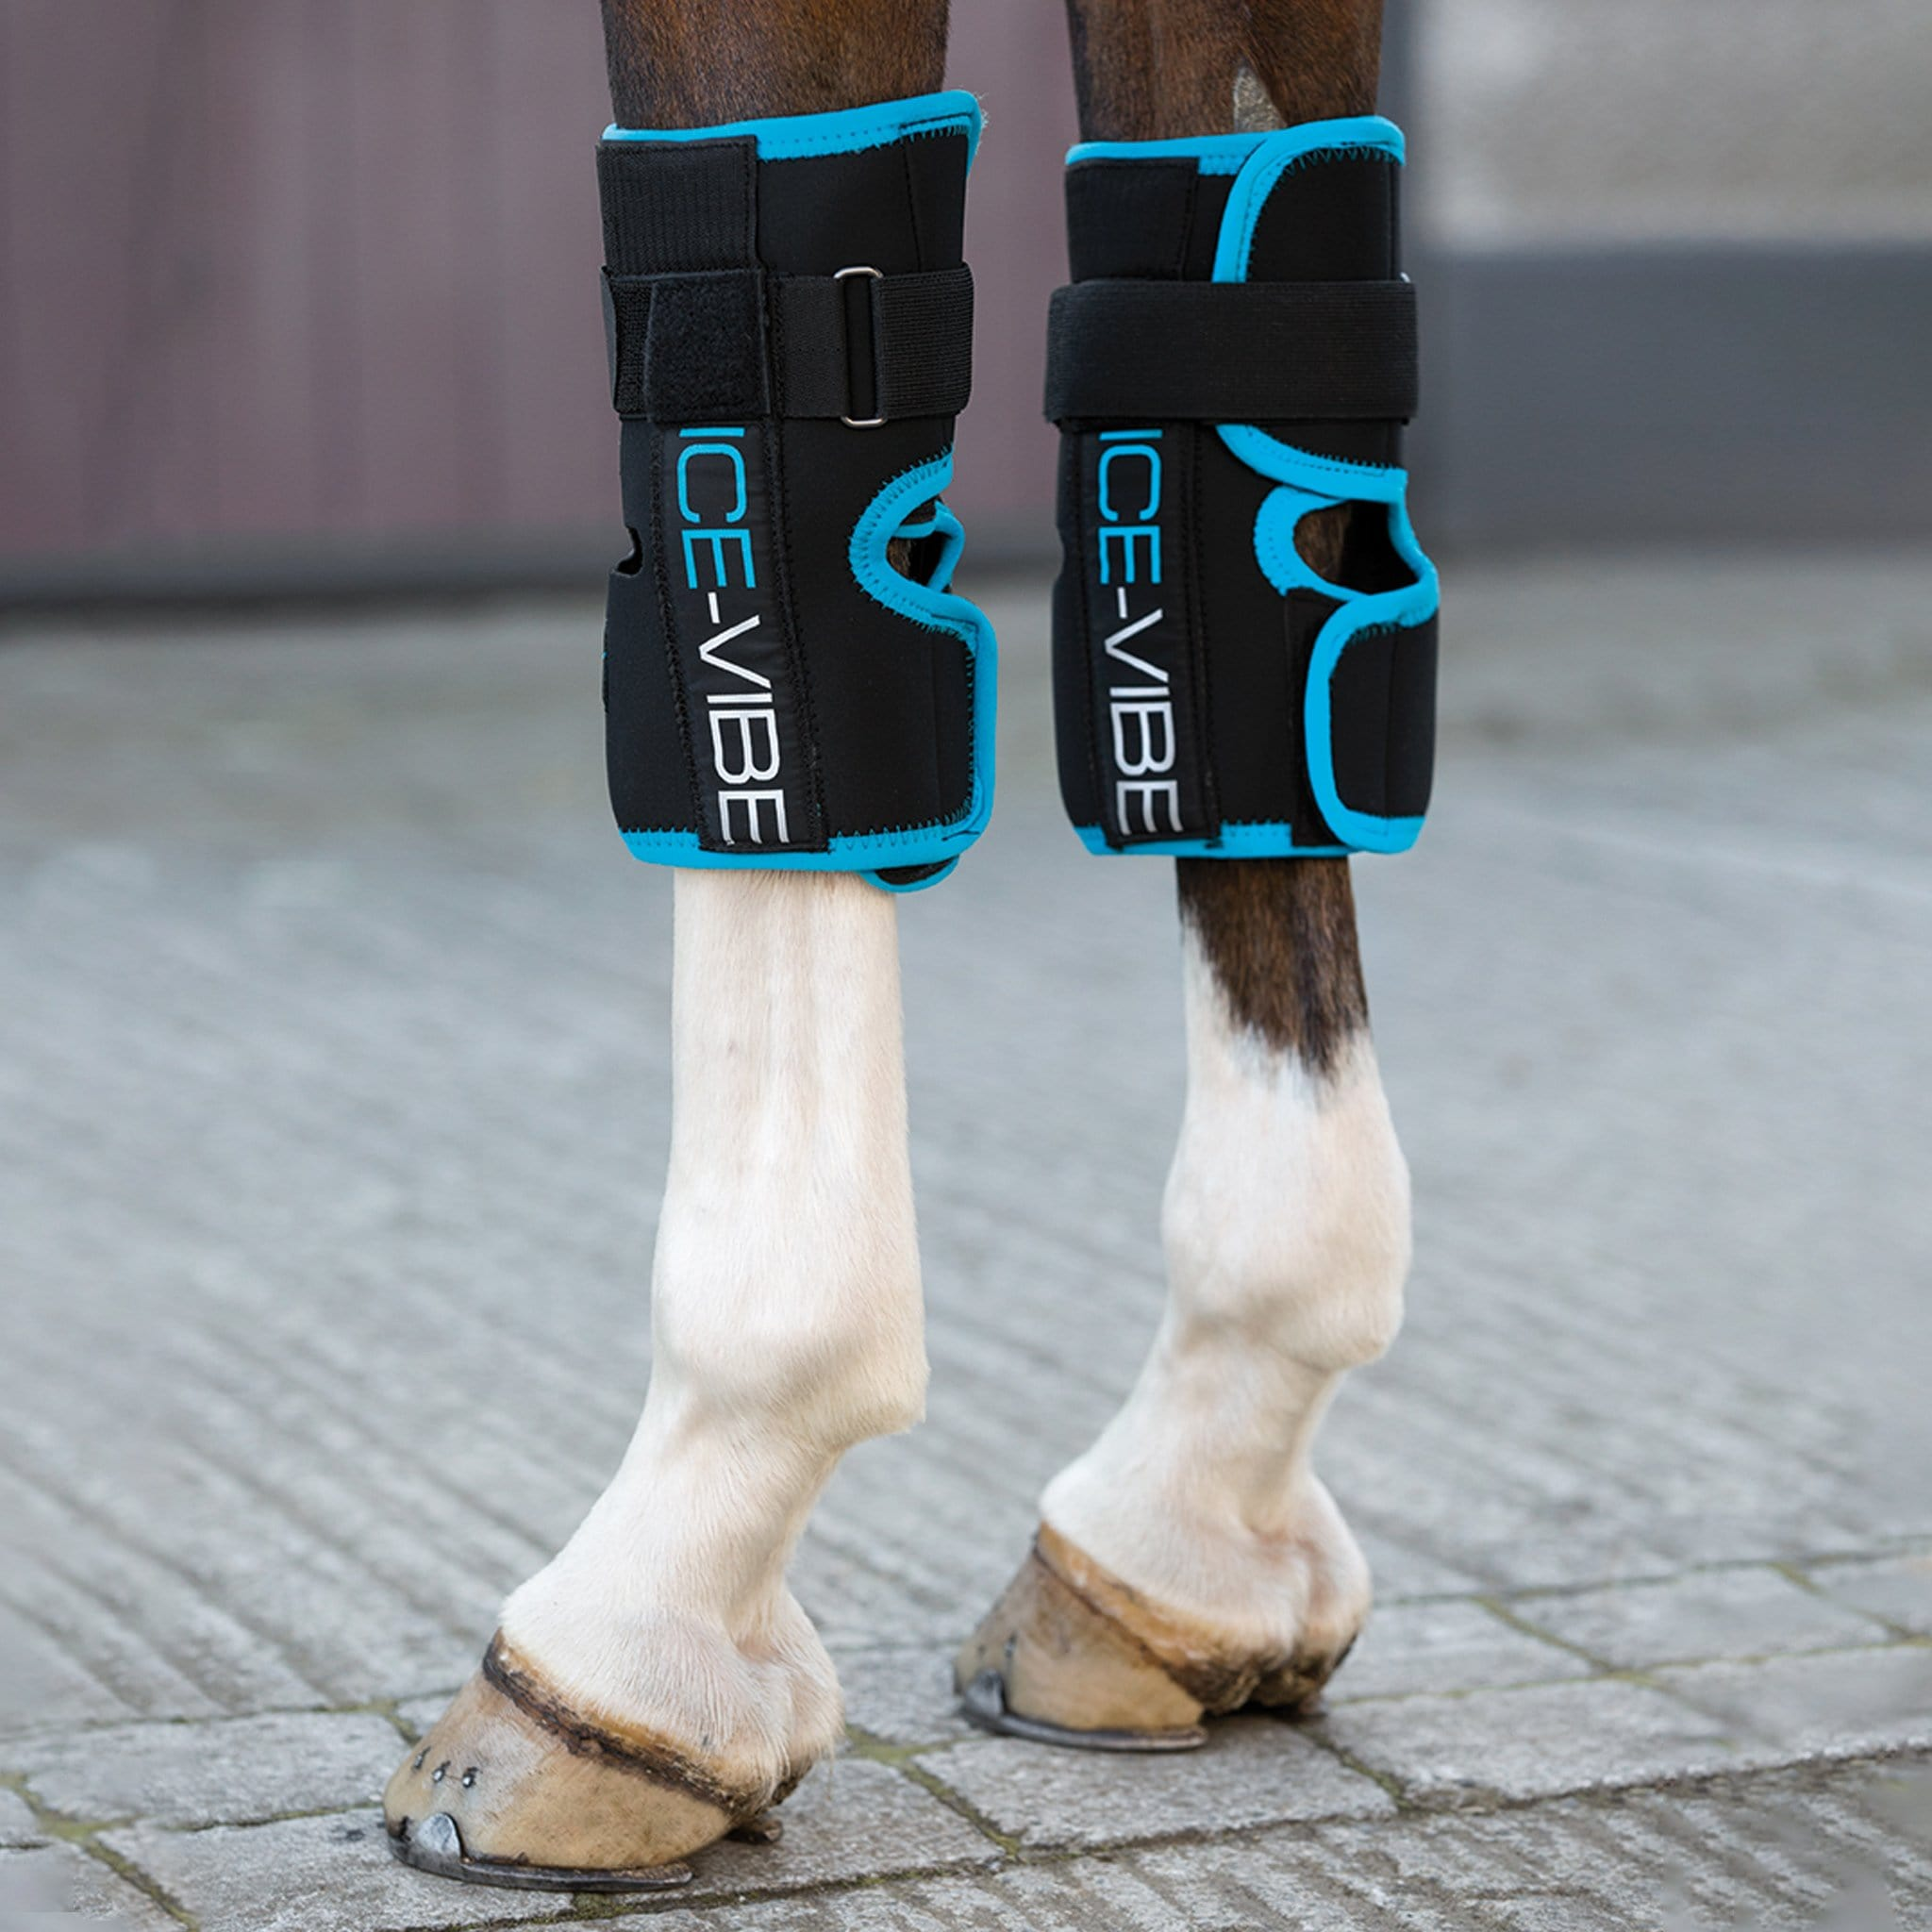 Horseware Ice-Vibe Knee Wraps DBHK72 Black and Teal